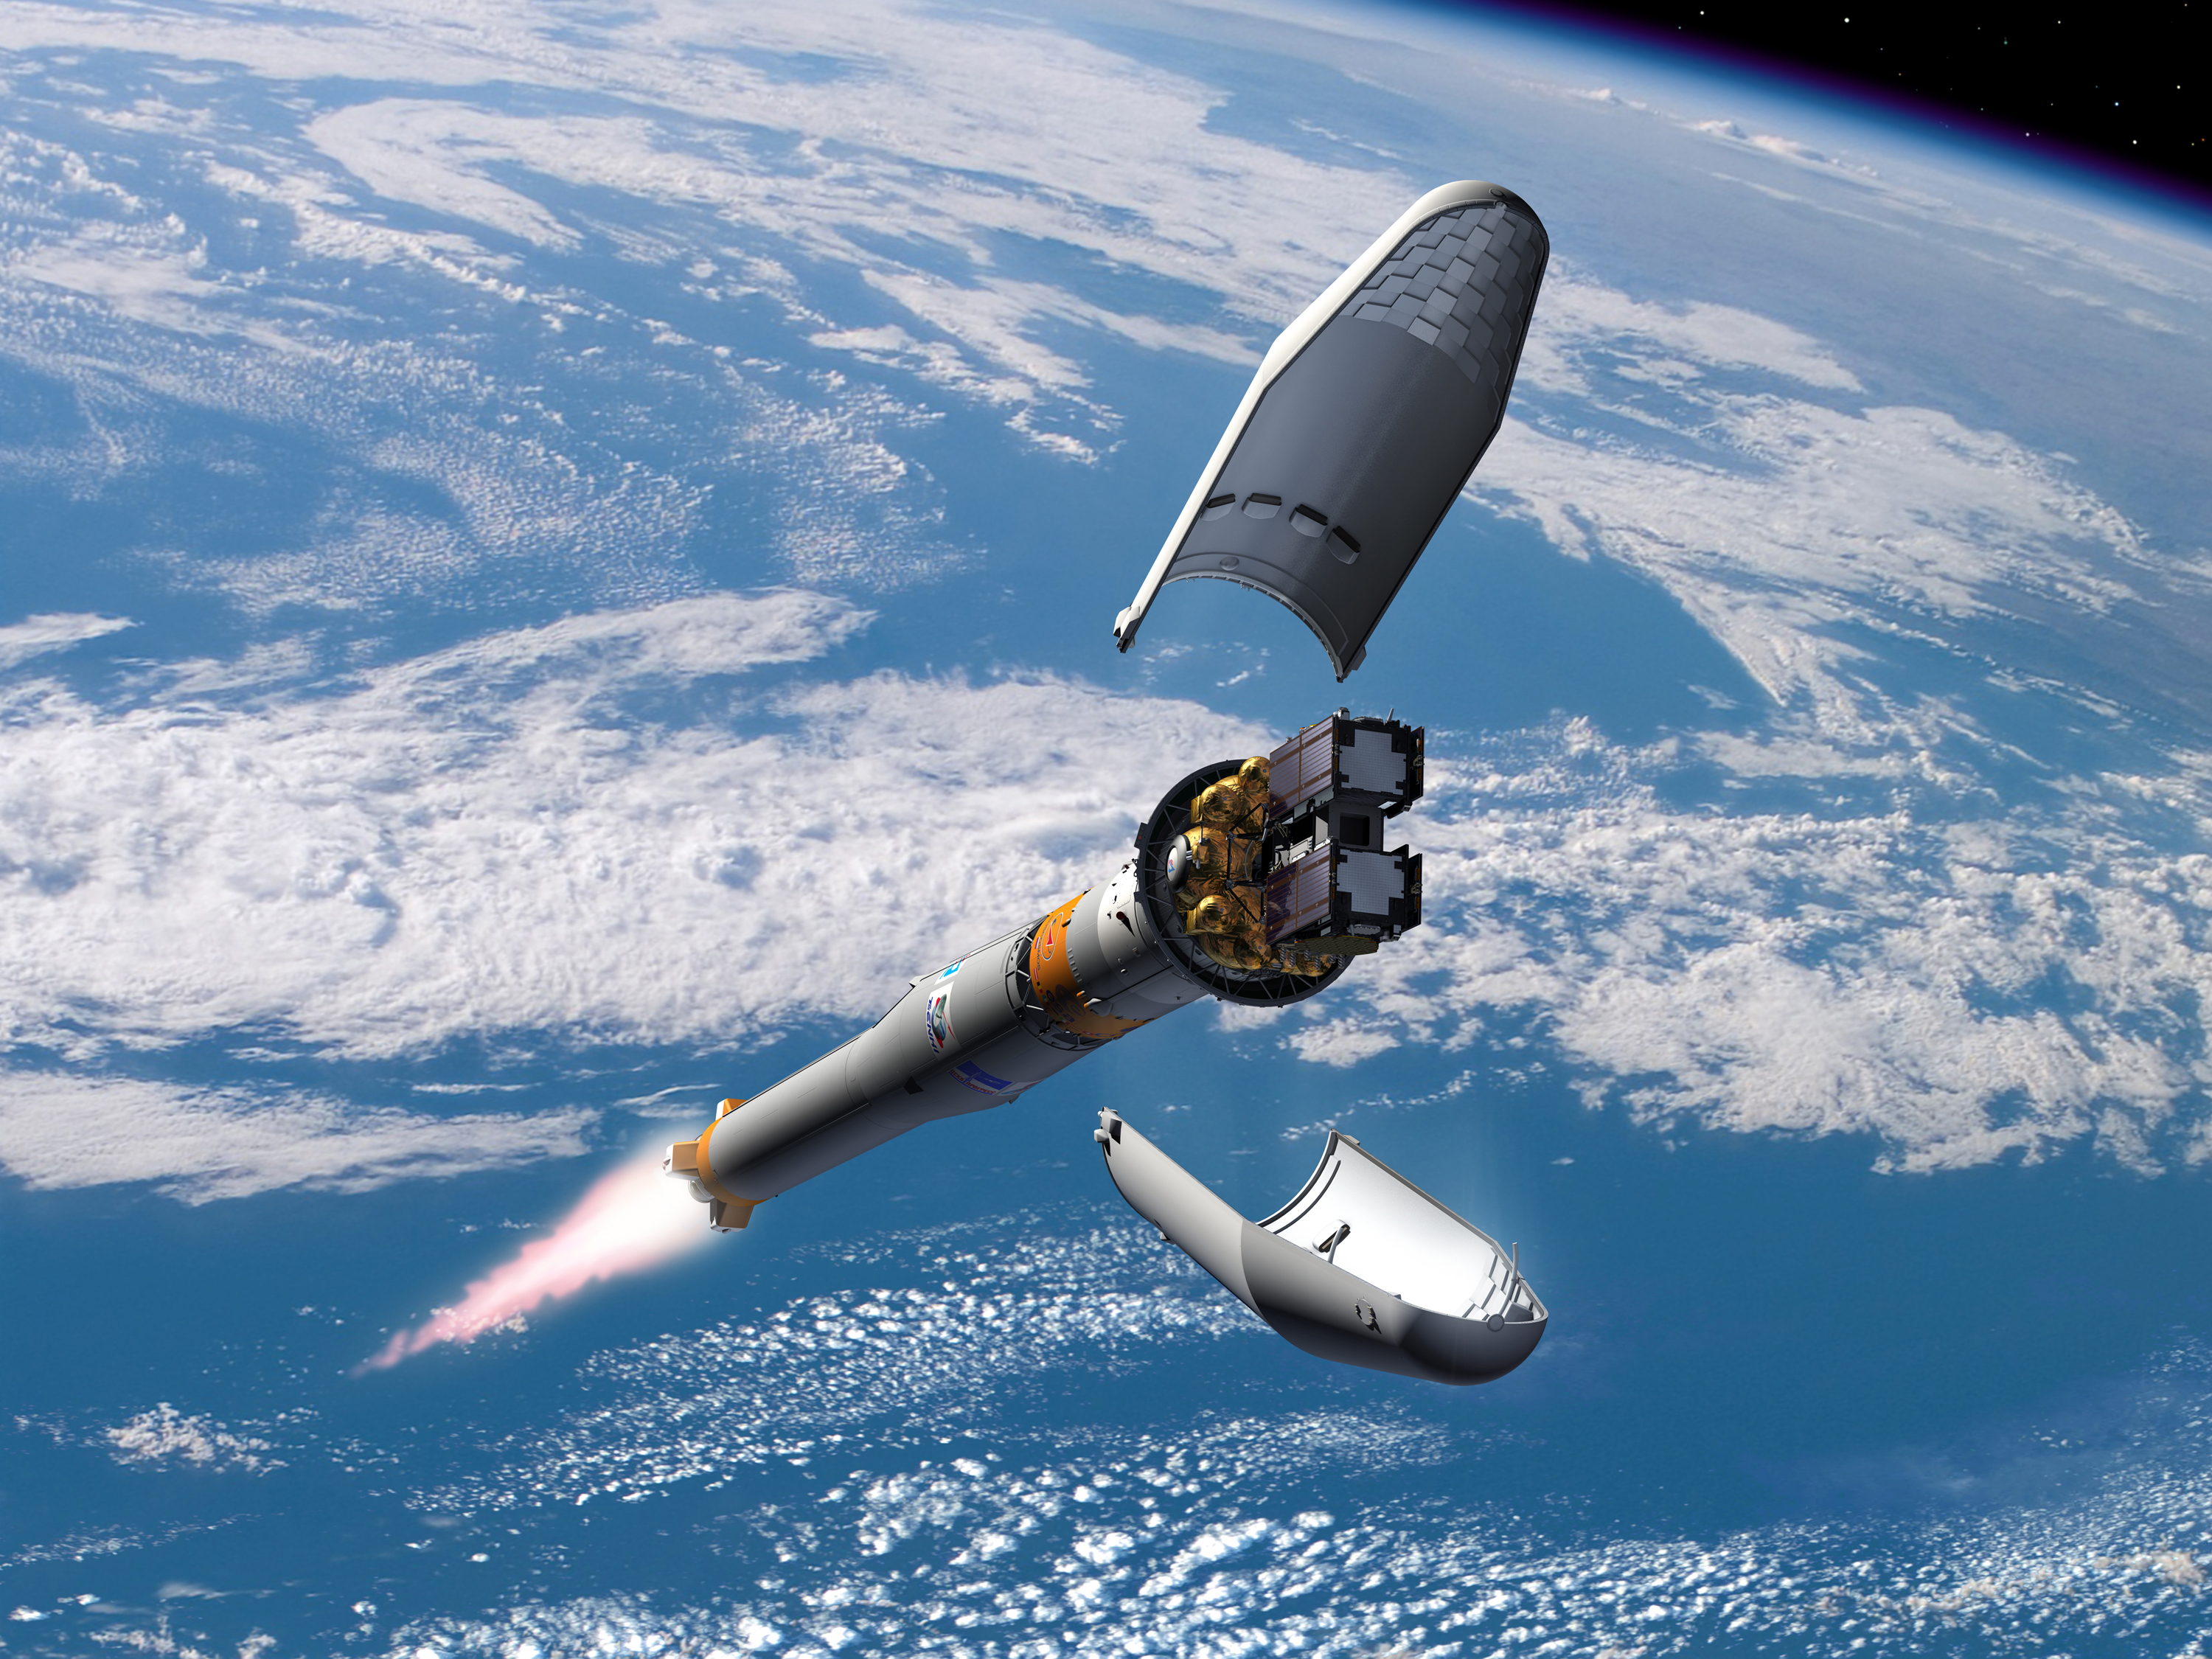 The two Galileo IOV satellites were protected during their launch by a launch fairing, which was ejected once Soyuz had  passed most of the way through the Earth's atmosphere